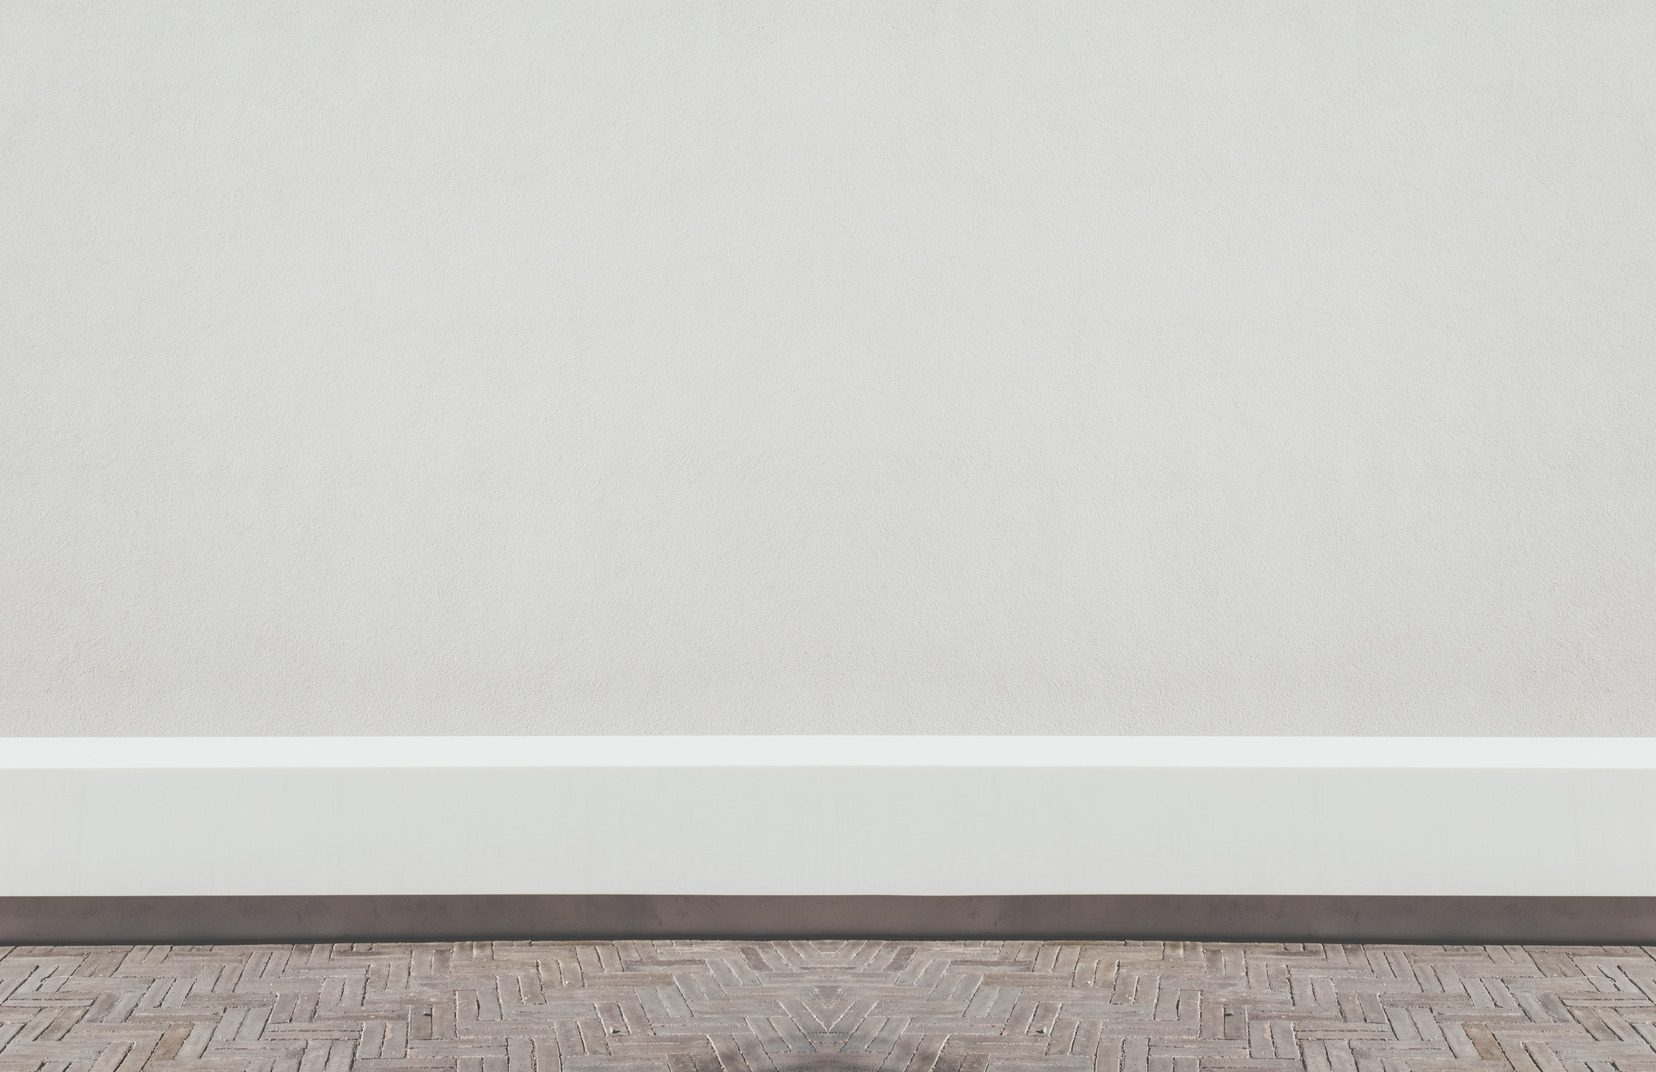 Background of white wall